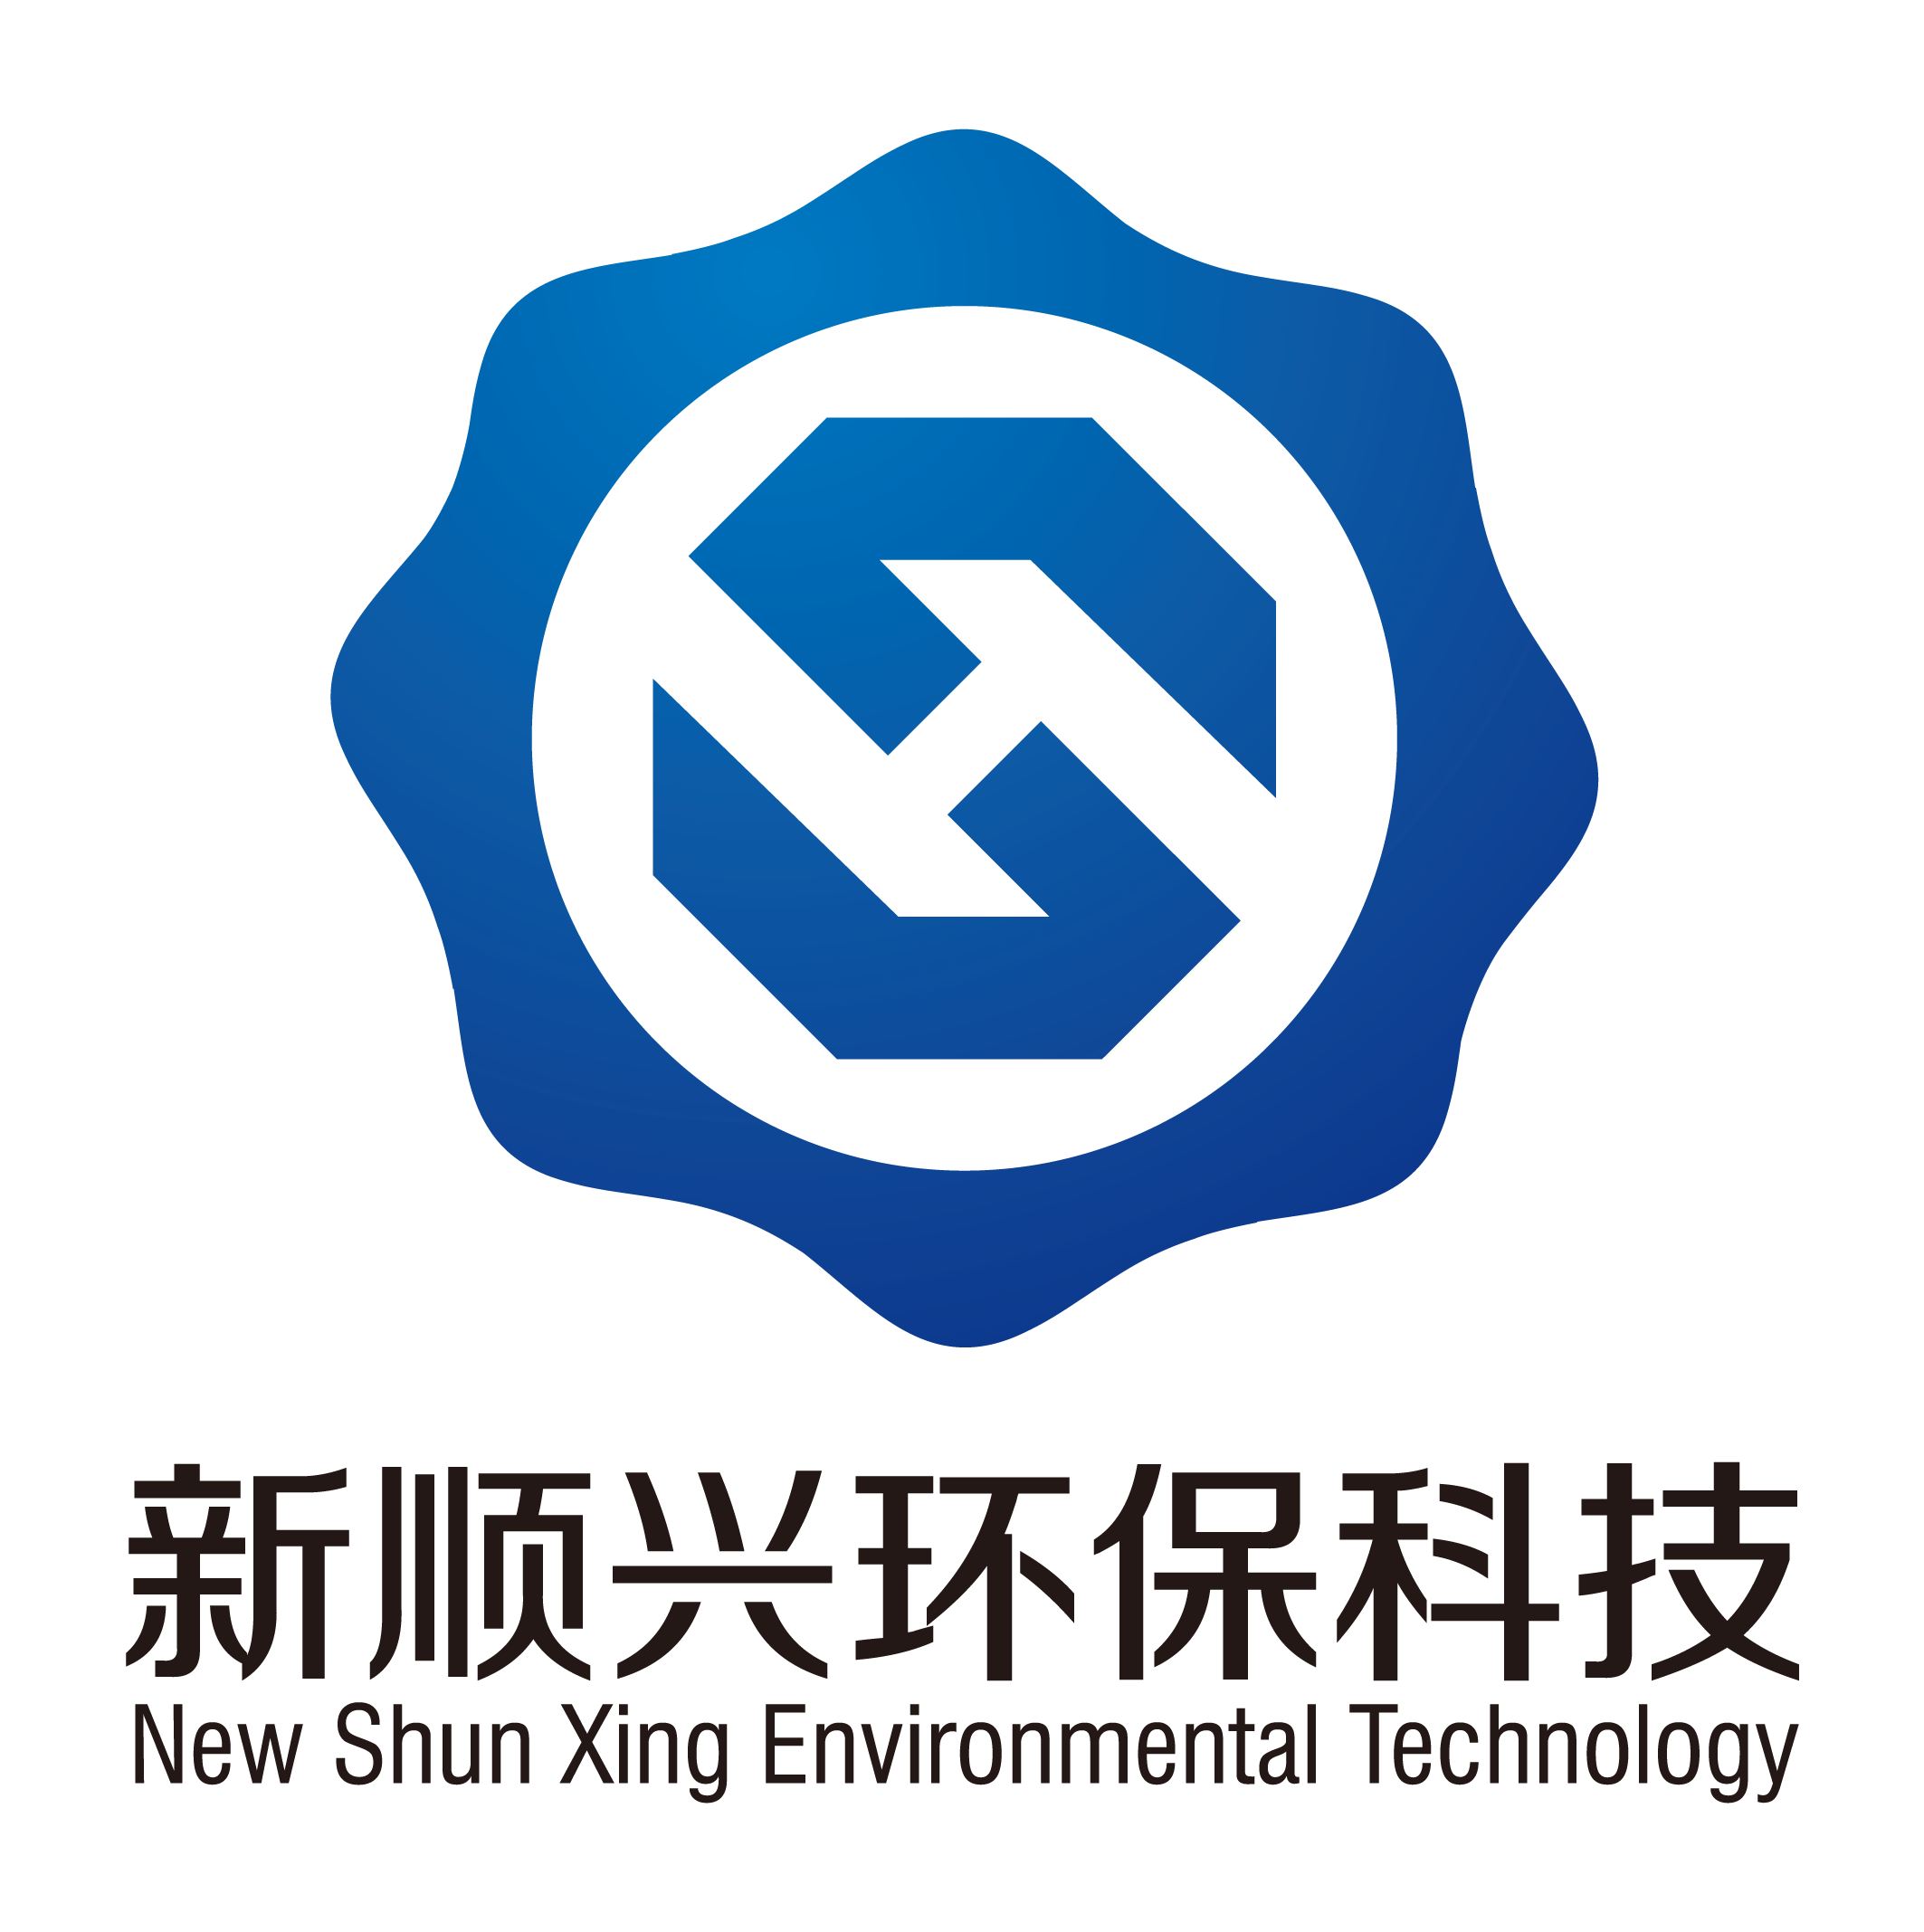 Логотип компании QINGDAO NEW SHUNXING ENVIRONMENTAL PROTECTION & TEC. CO.,LTD